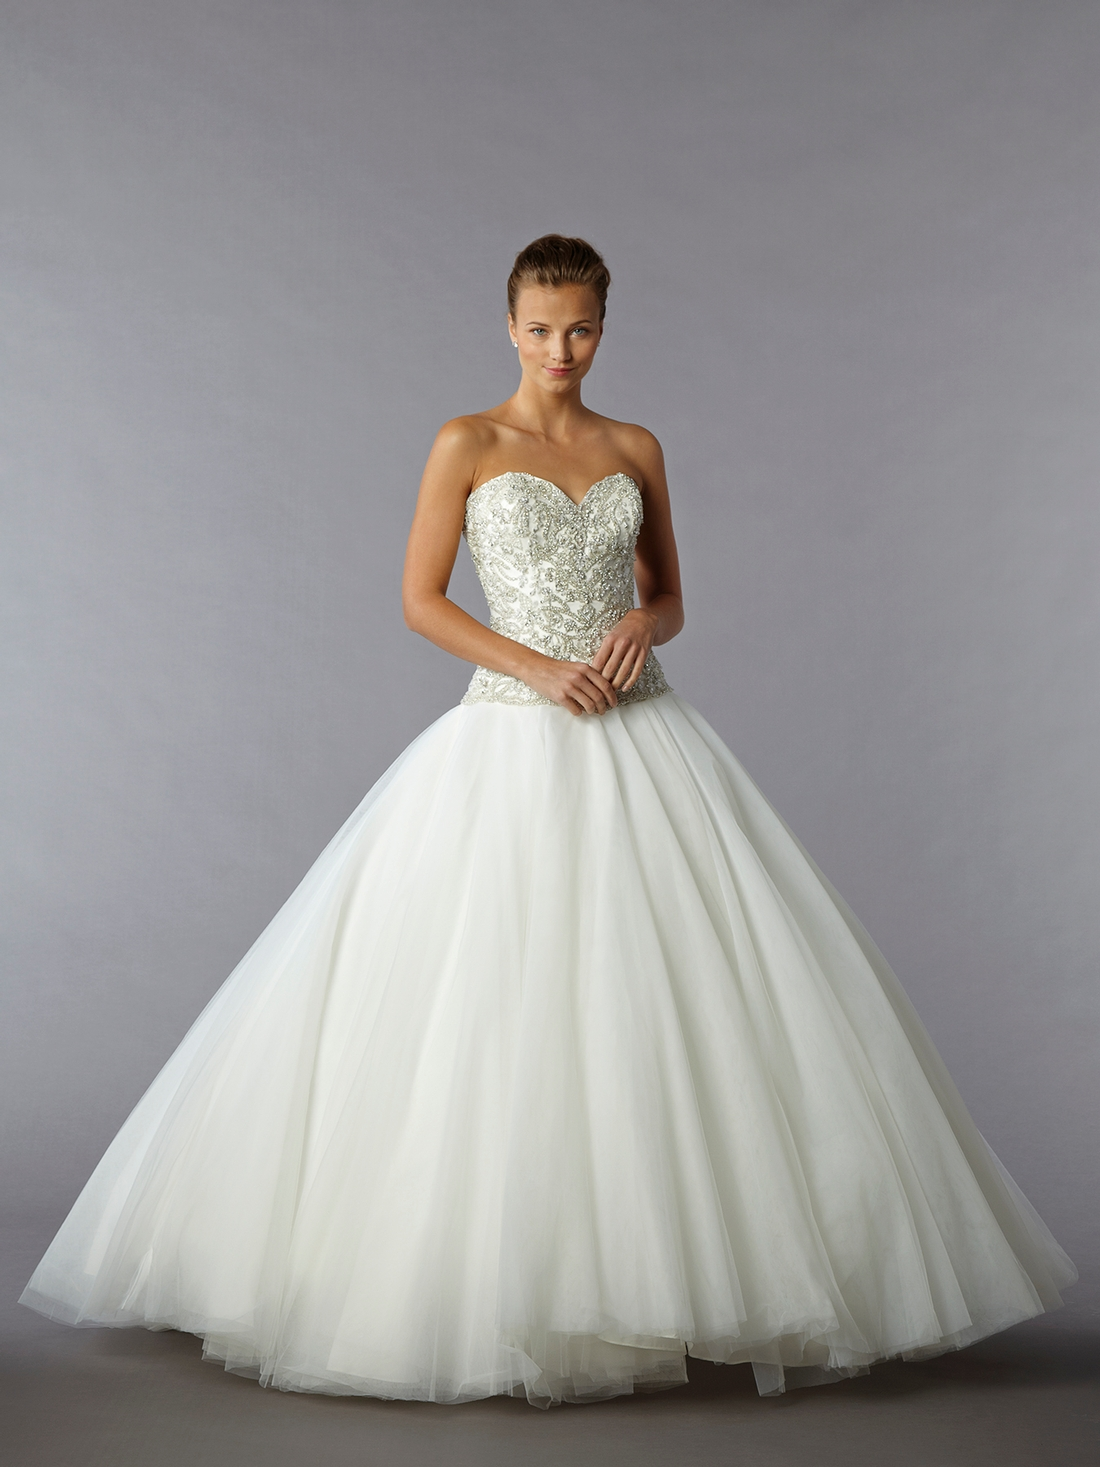 drop waist wedding dresses with bling bling wedding dresses Drop Waist Wedding Dress Dressed Up Girl